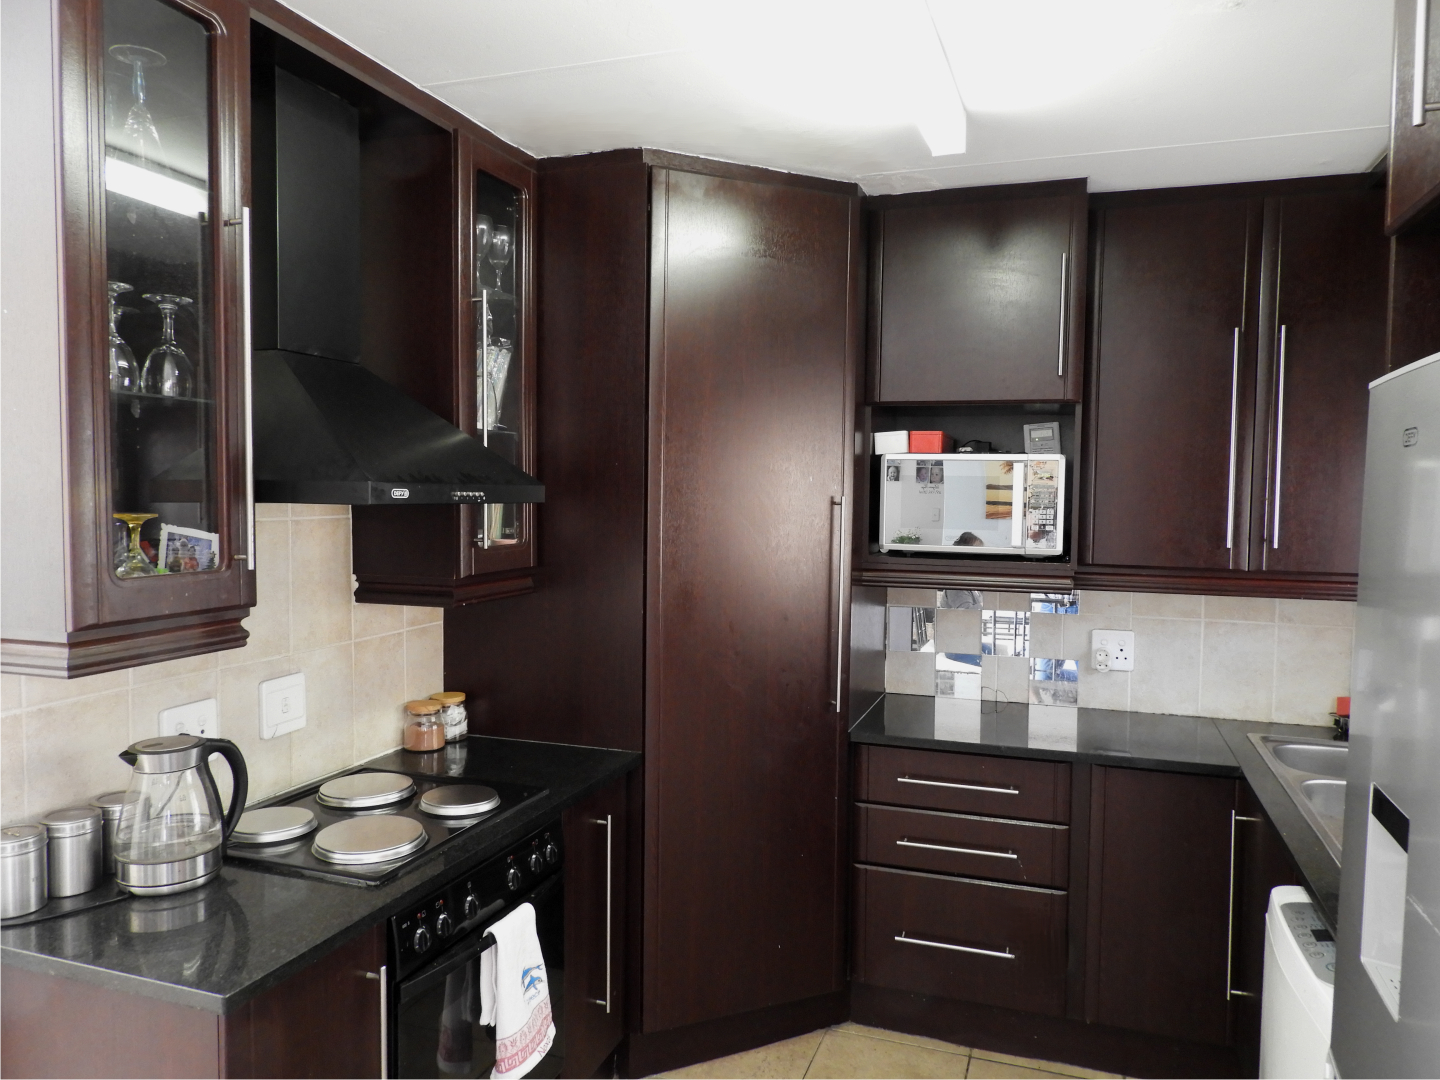 Stunning neat & spacious 2 bed townhouse with lounge & dining area on auction in The Reeds!